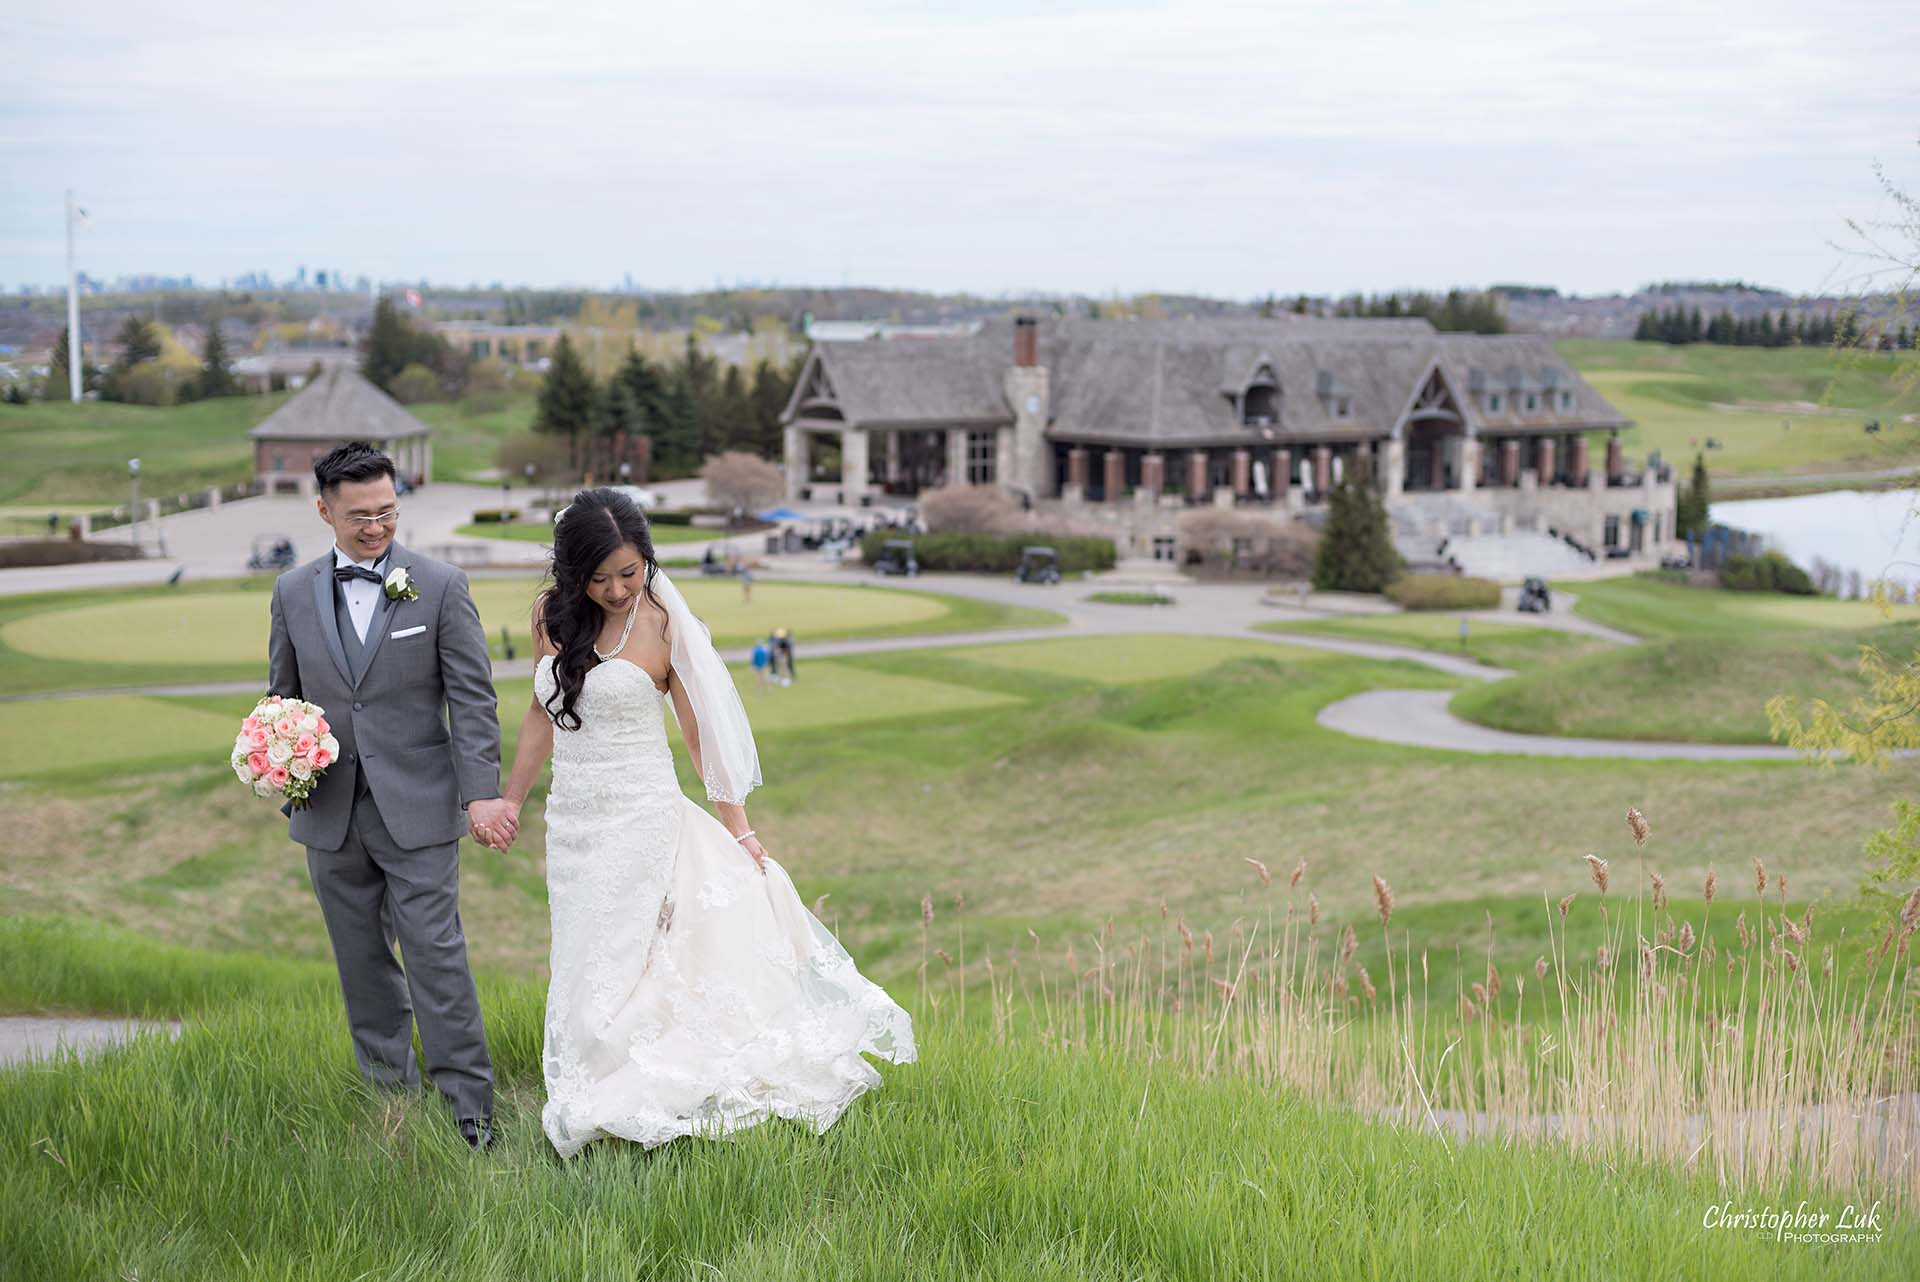 Christopher Luk Toronto Wedding Photographer Eagles Nest Golf Club Course Clubhouse Walking Climbing Up a Grassy Hill Together Bride Groom Holding Hands Scenic Landscape Wide